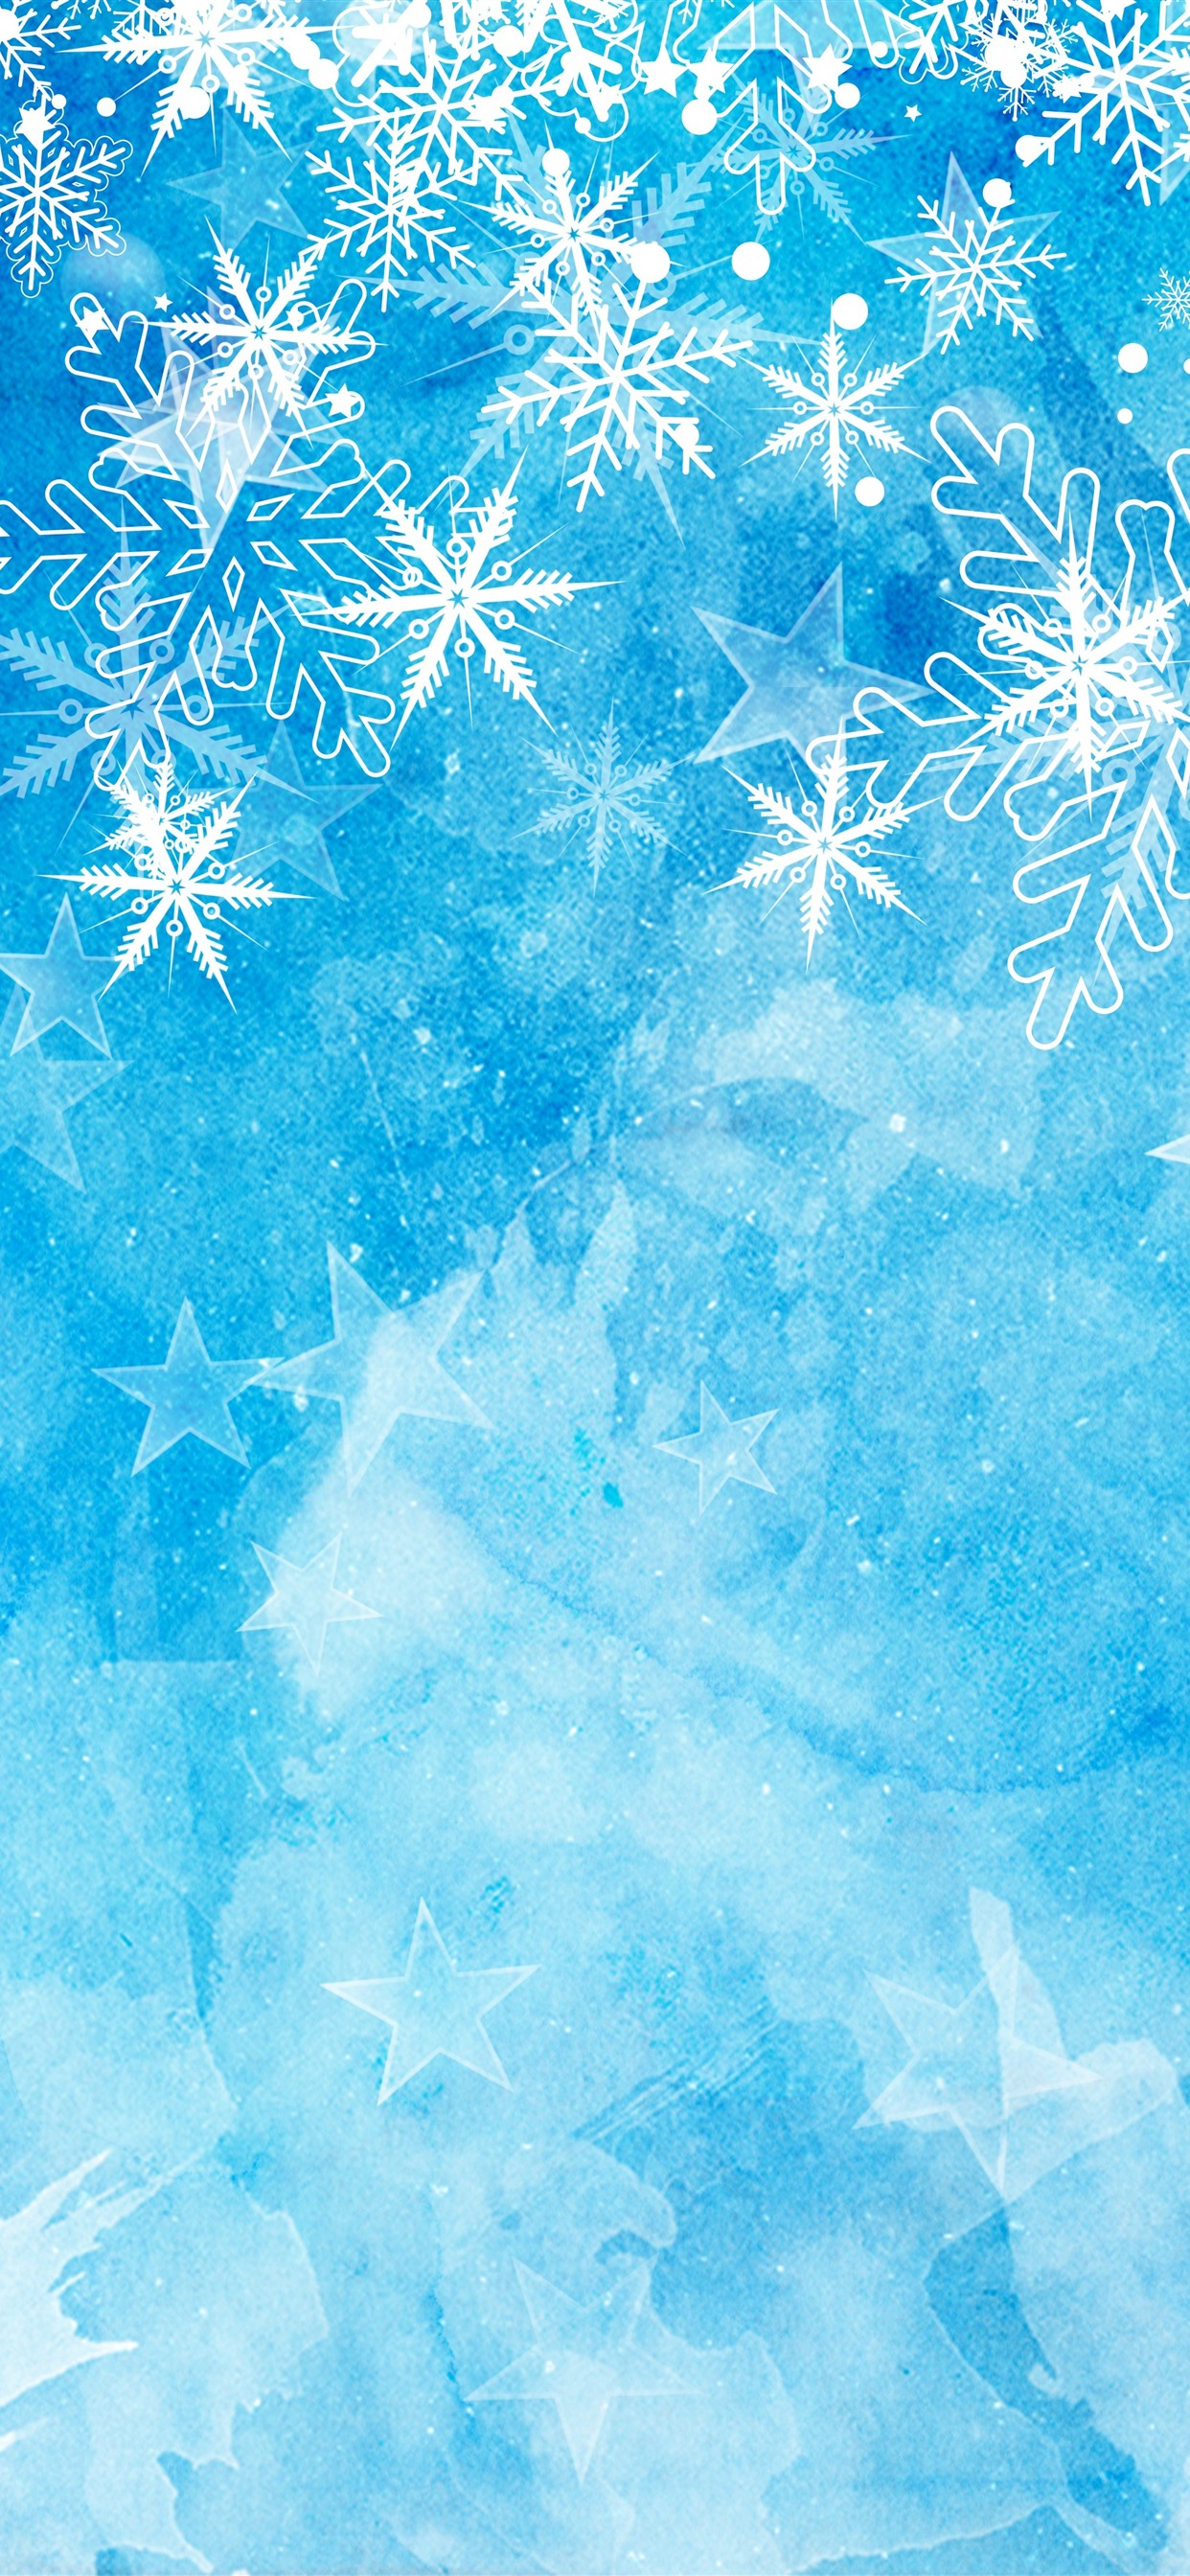 Snowflakes Blue Background Christmas Theme 1242x2688